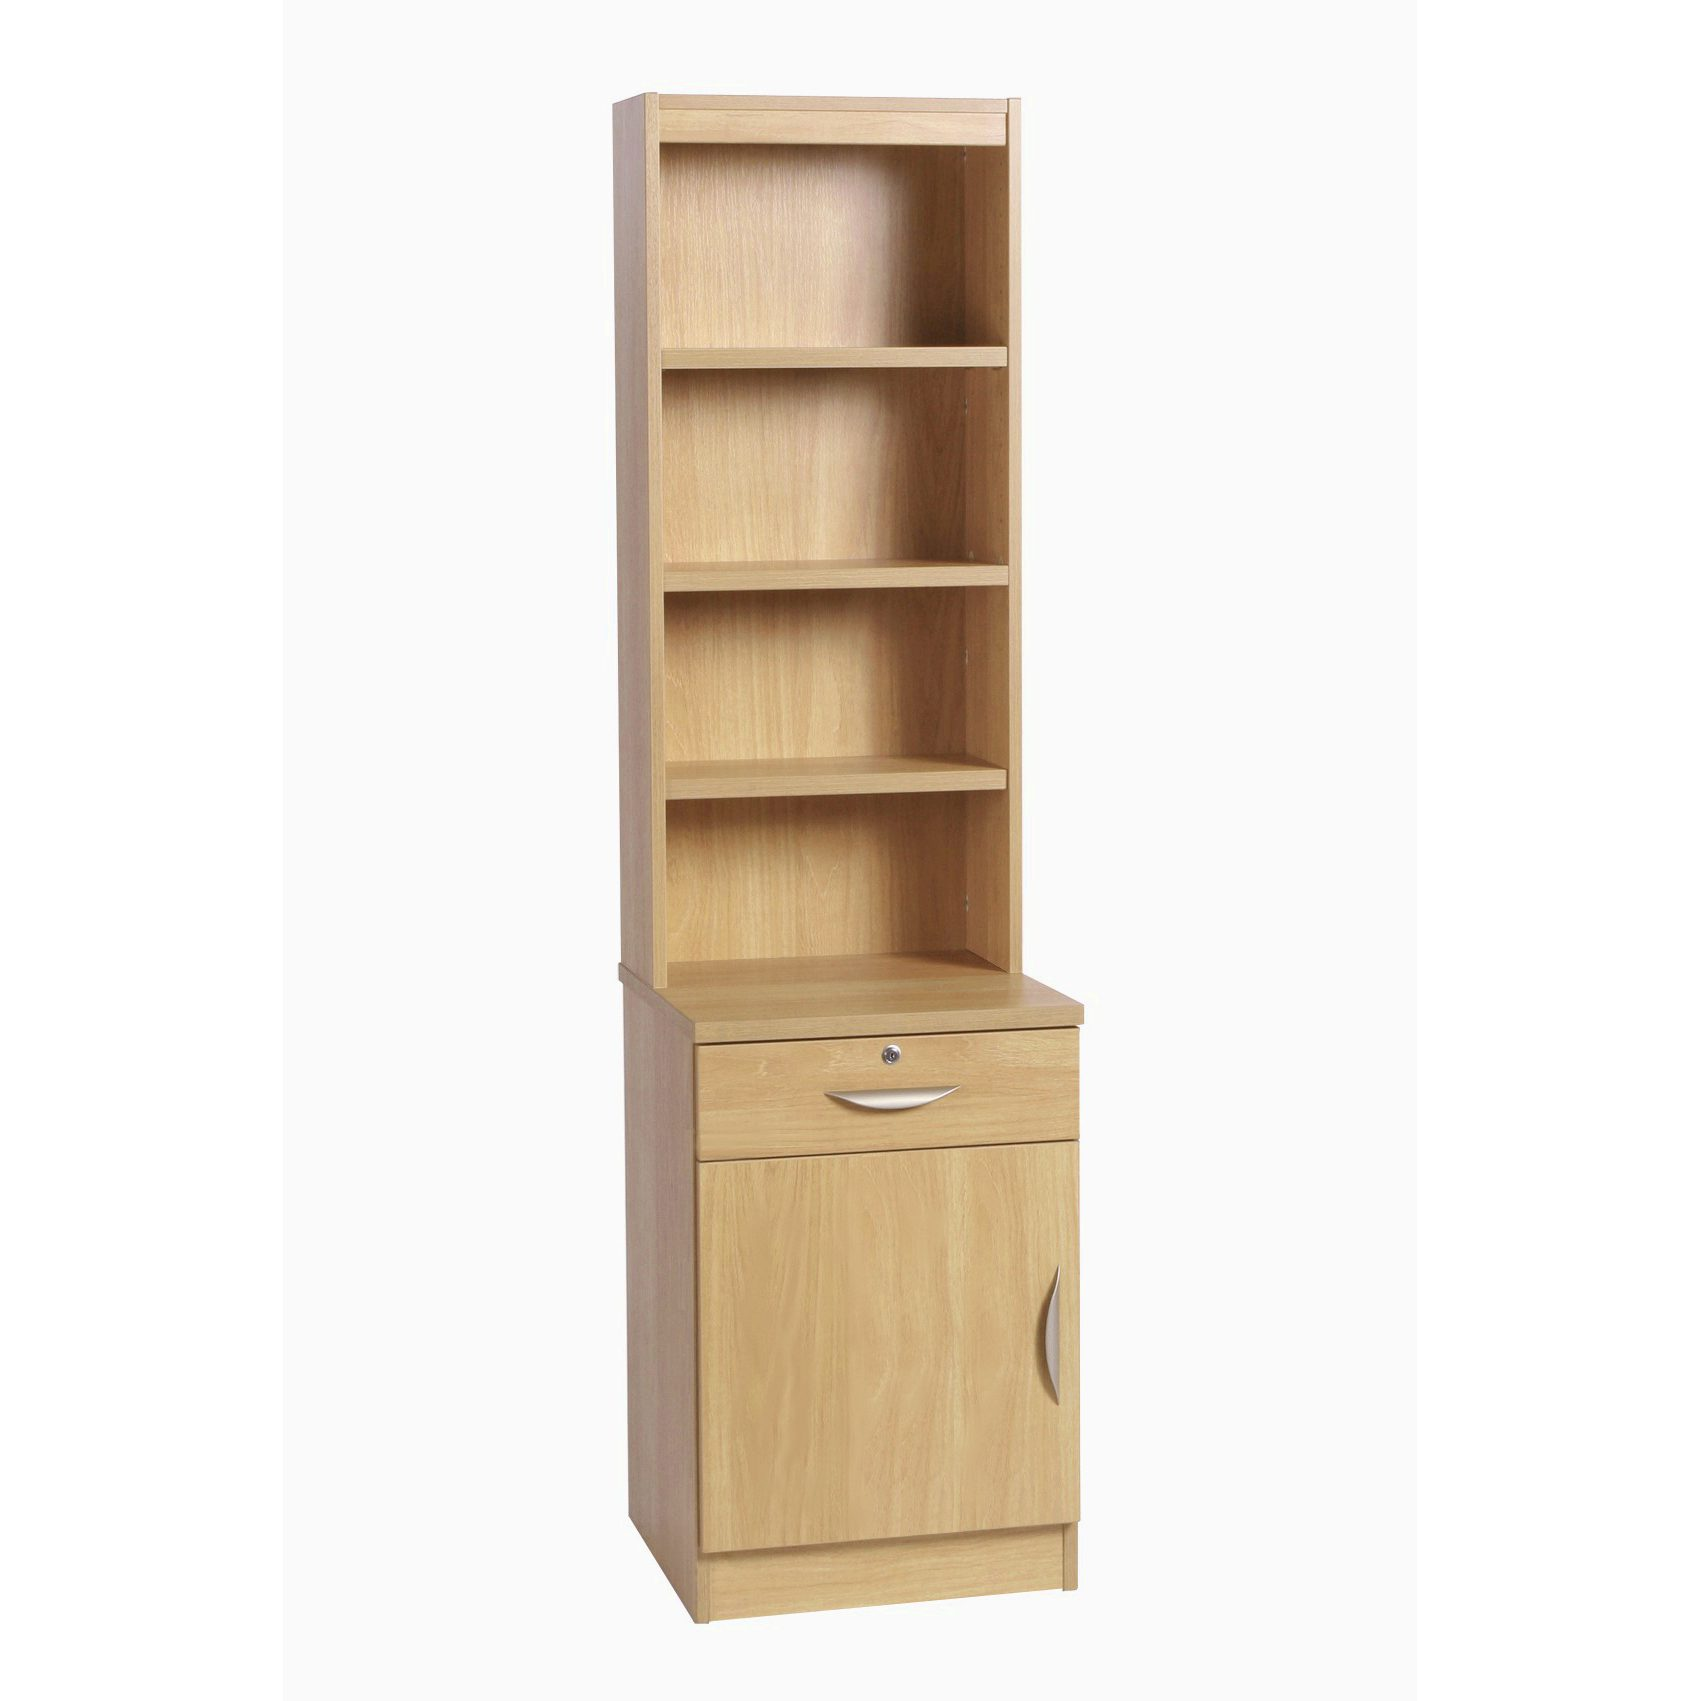 Desk Height Storage Deep Cupboard Drawer 480mm Unit Lh With Hutch Bookcase